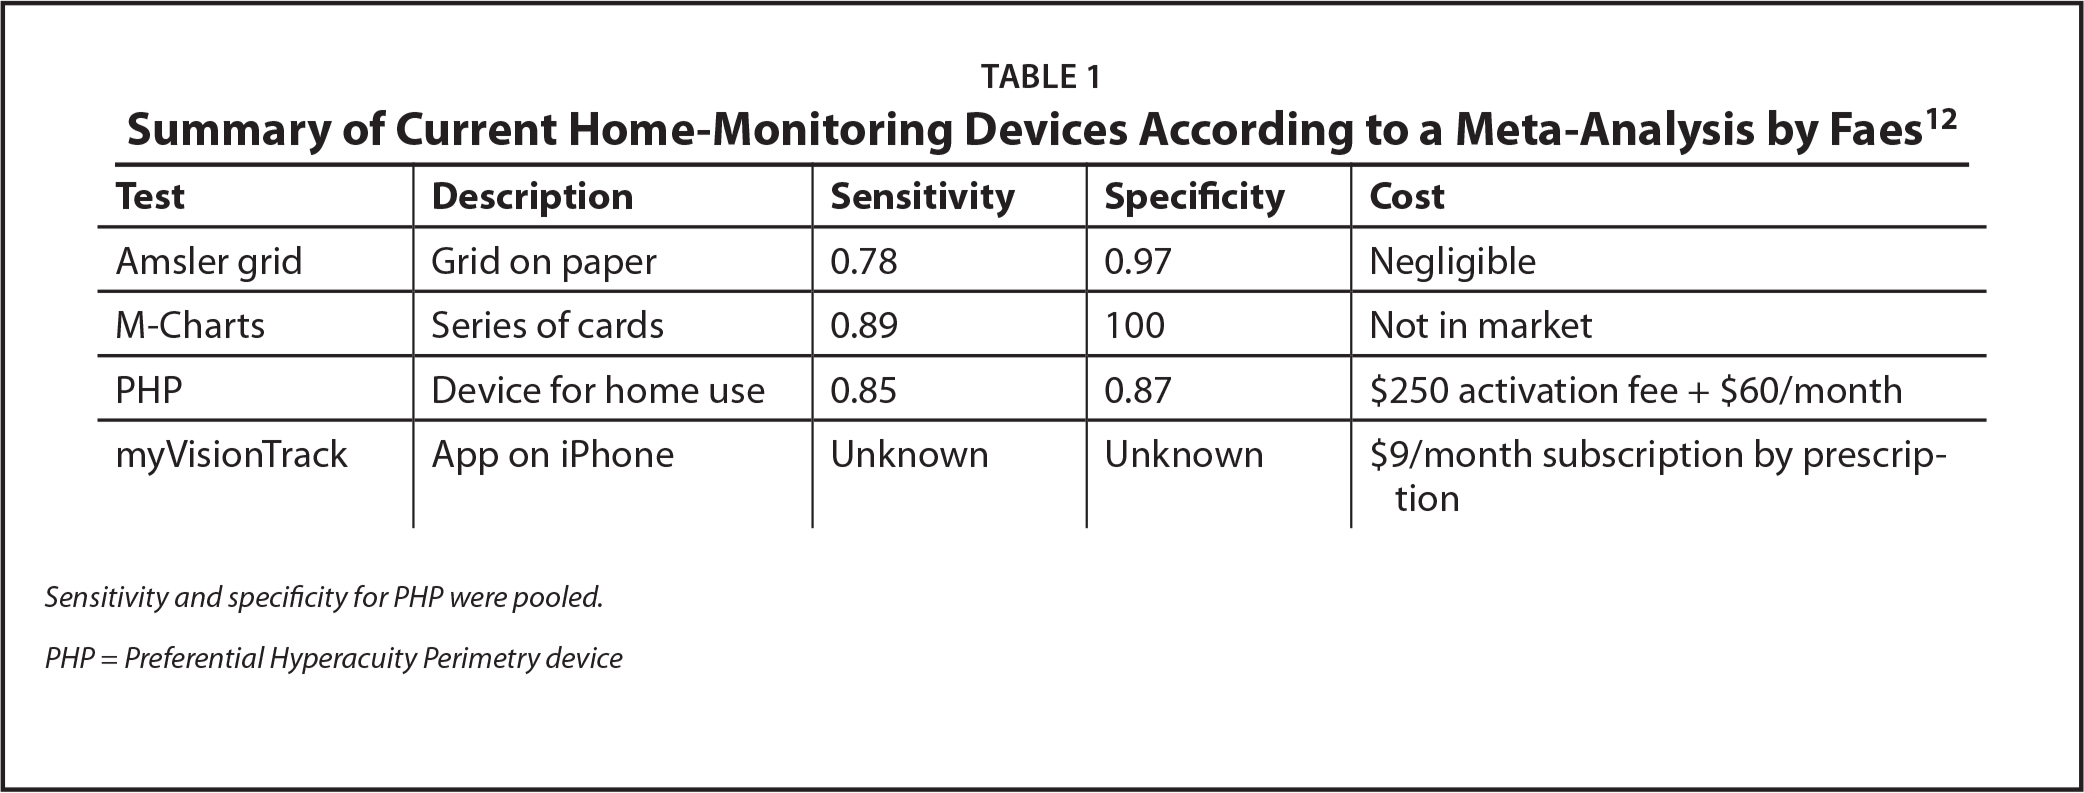 Summary of Current Home-Monitoring Devices According to a Meta-Analysis by Faes12